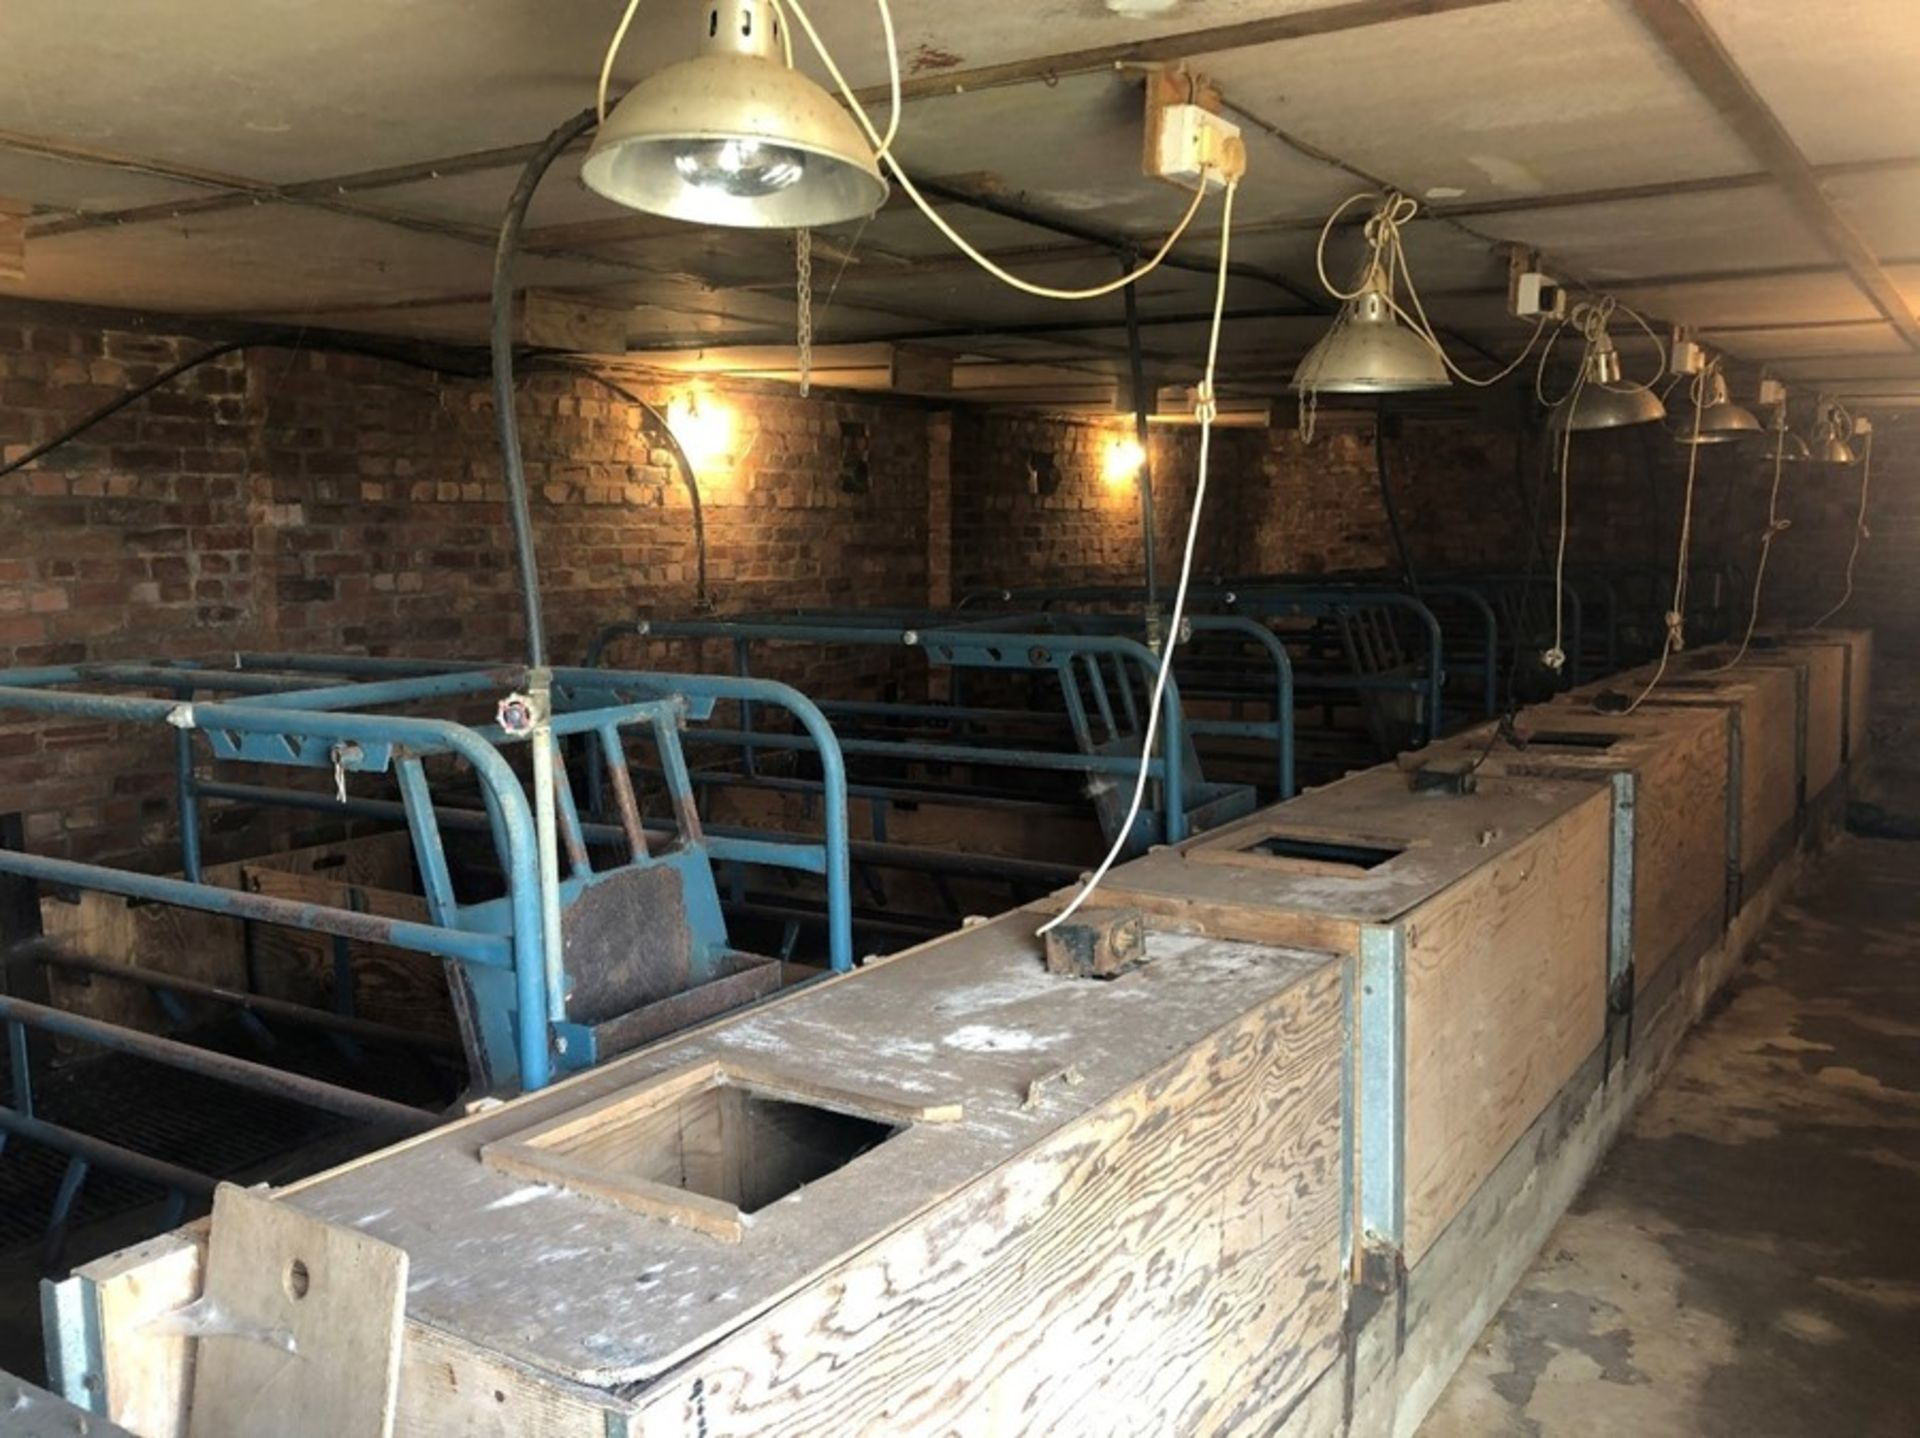 6 farrowing crates, cast iron slatted floors, weaner boxes (sold in situ, buyer to dismantle)